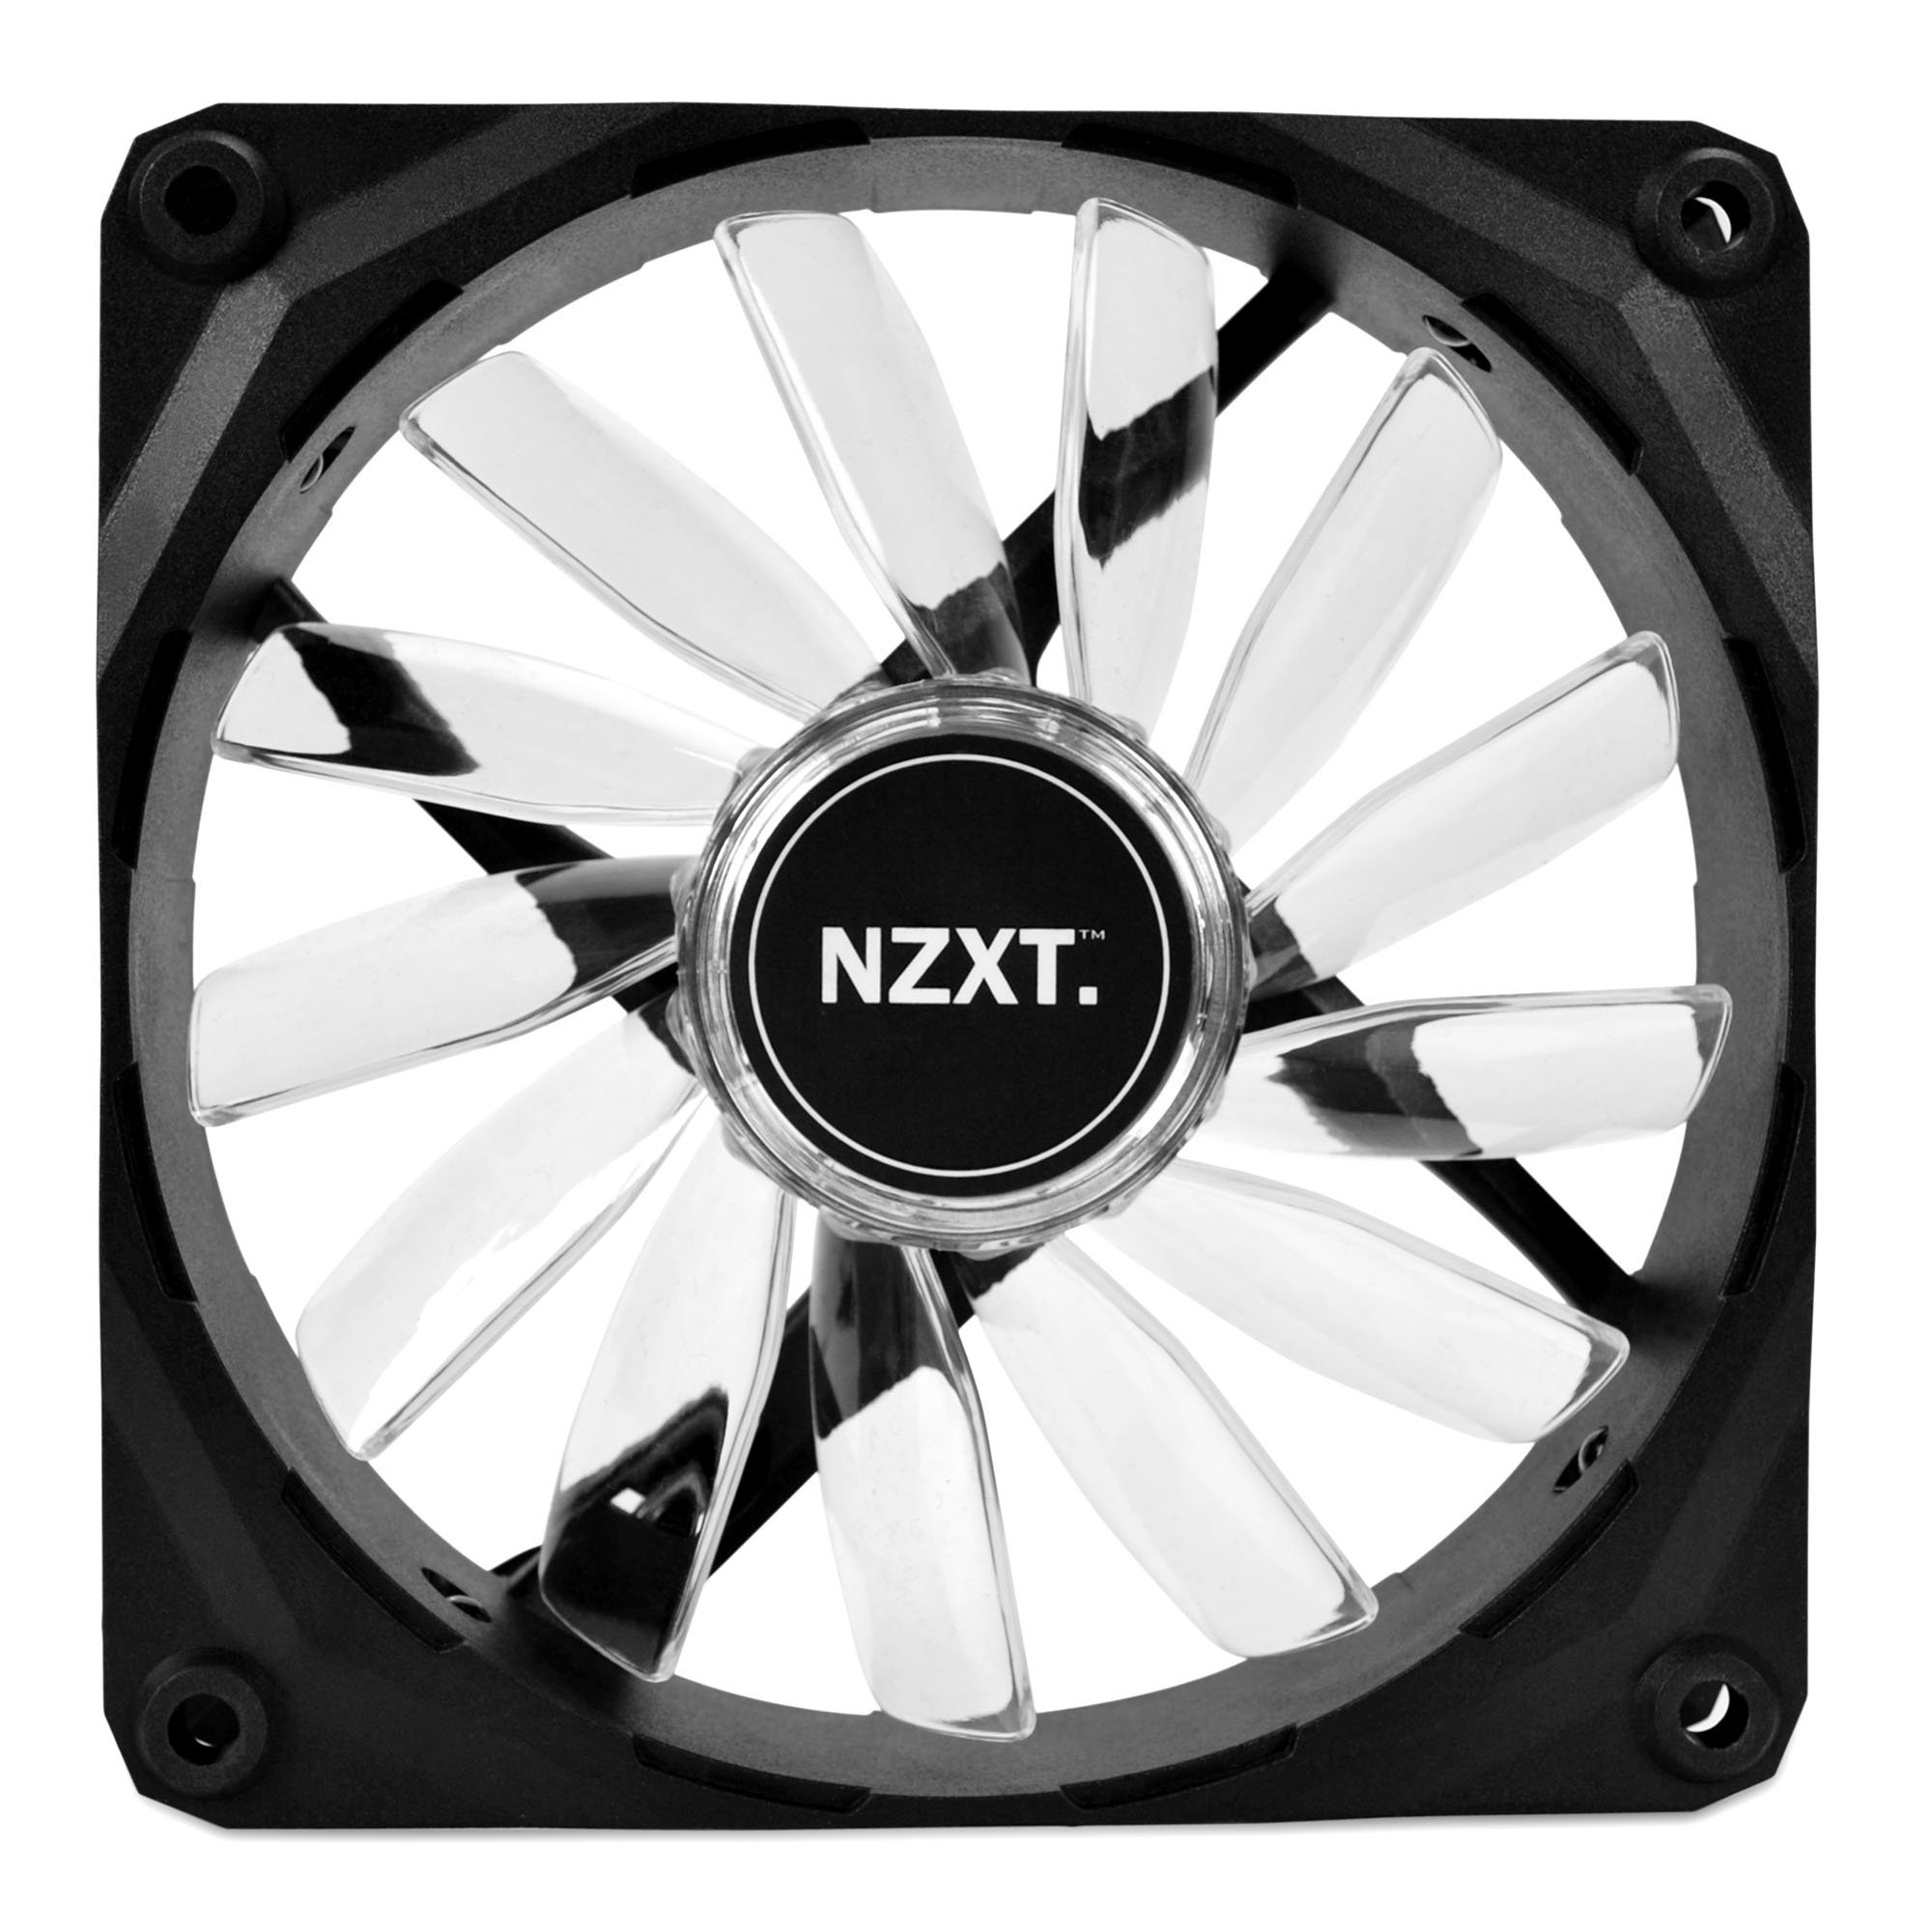 Nzxt 128043 Fan Rf-fz120-r1 Fz120led 120mm Air Flow Led Red